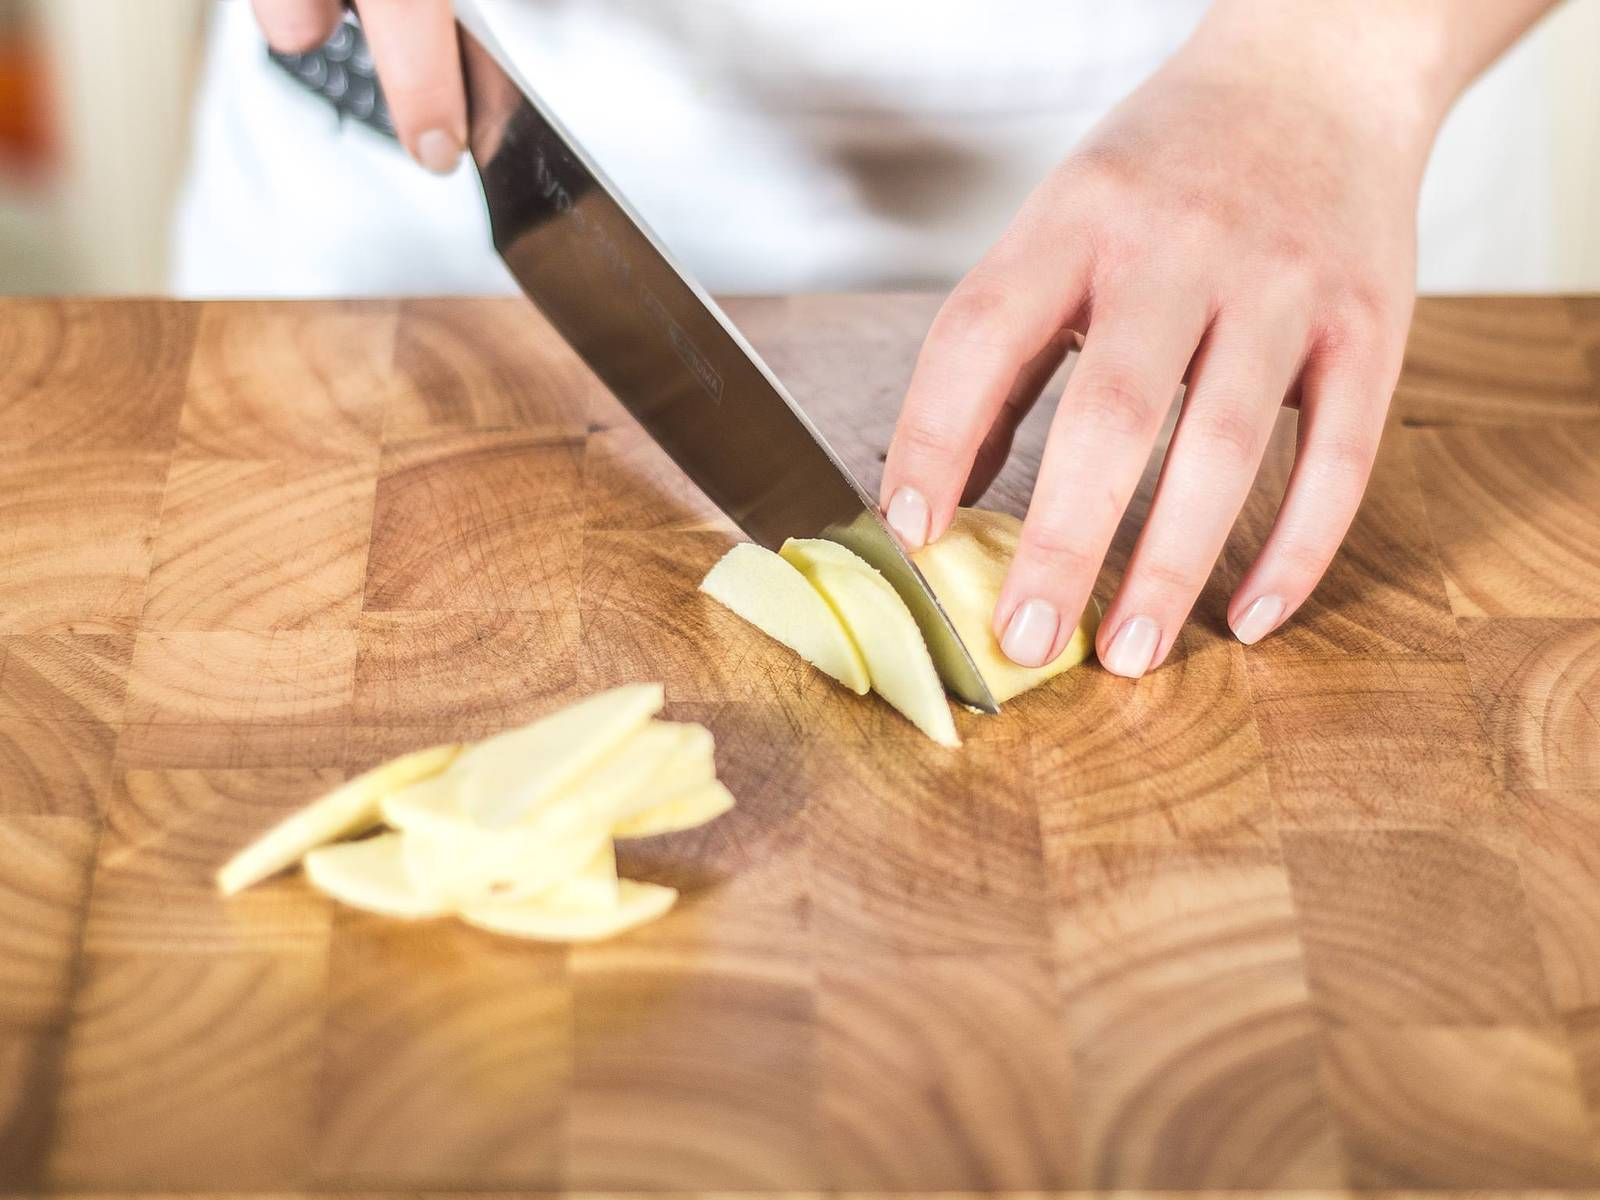 Preheat the oven to 180°C/ 350°F. Then, peel and core the apples, halve them lengthwise, and cut them into thin slices.